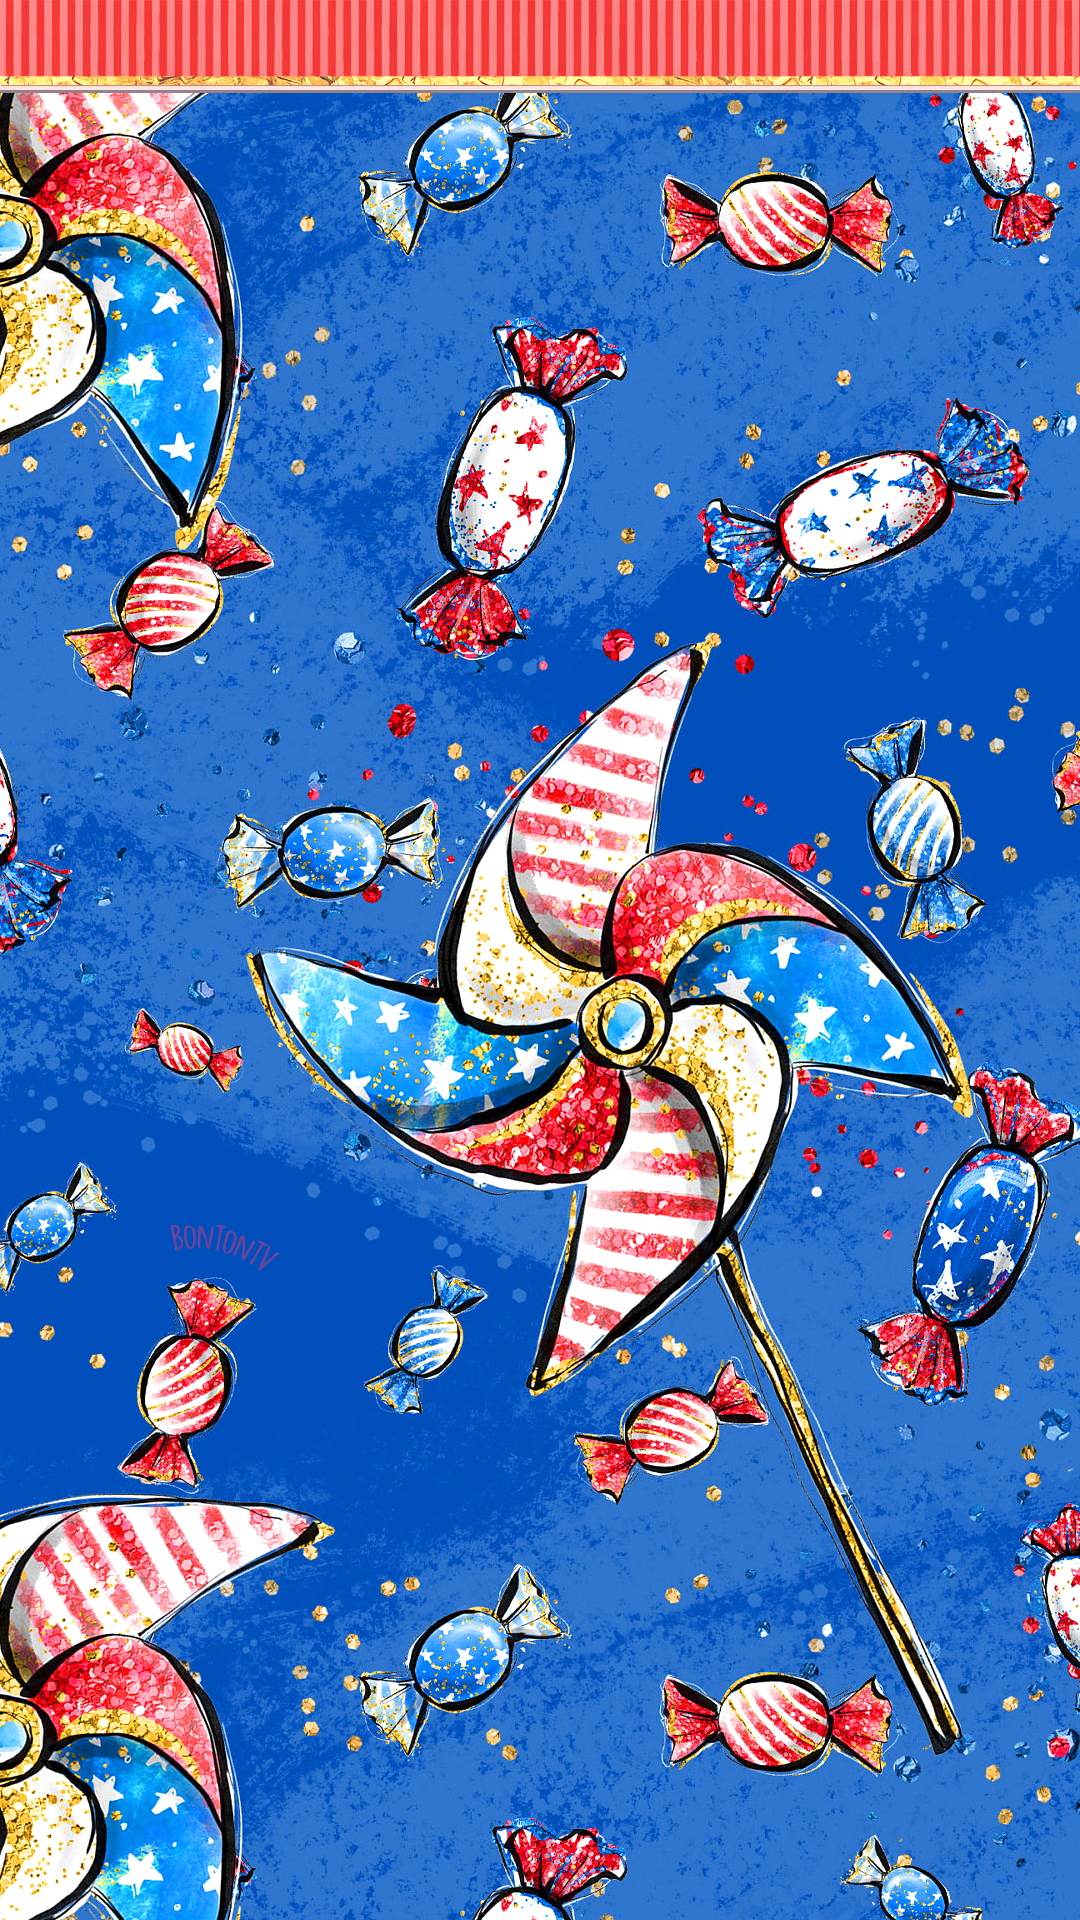 Phone Wallpapers Hd 4th Of July Independence Day Celebration Cute Glitter By Bonton Tv Free Background Phone Wallpaper Mermaid Wallpapers Iphone Wallpaper